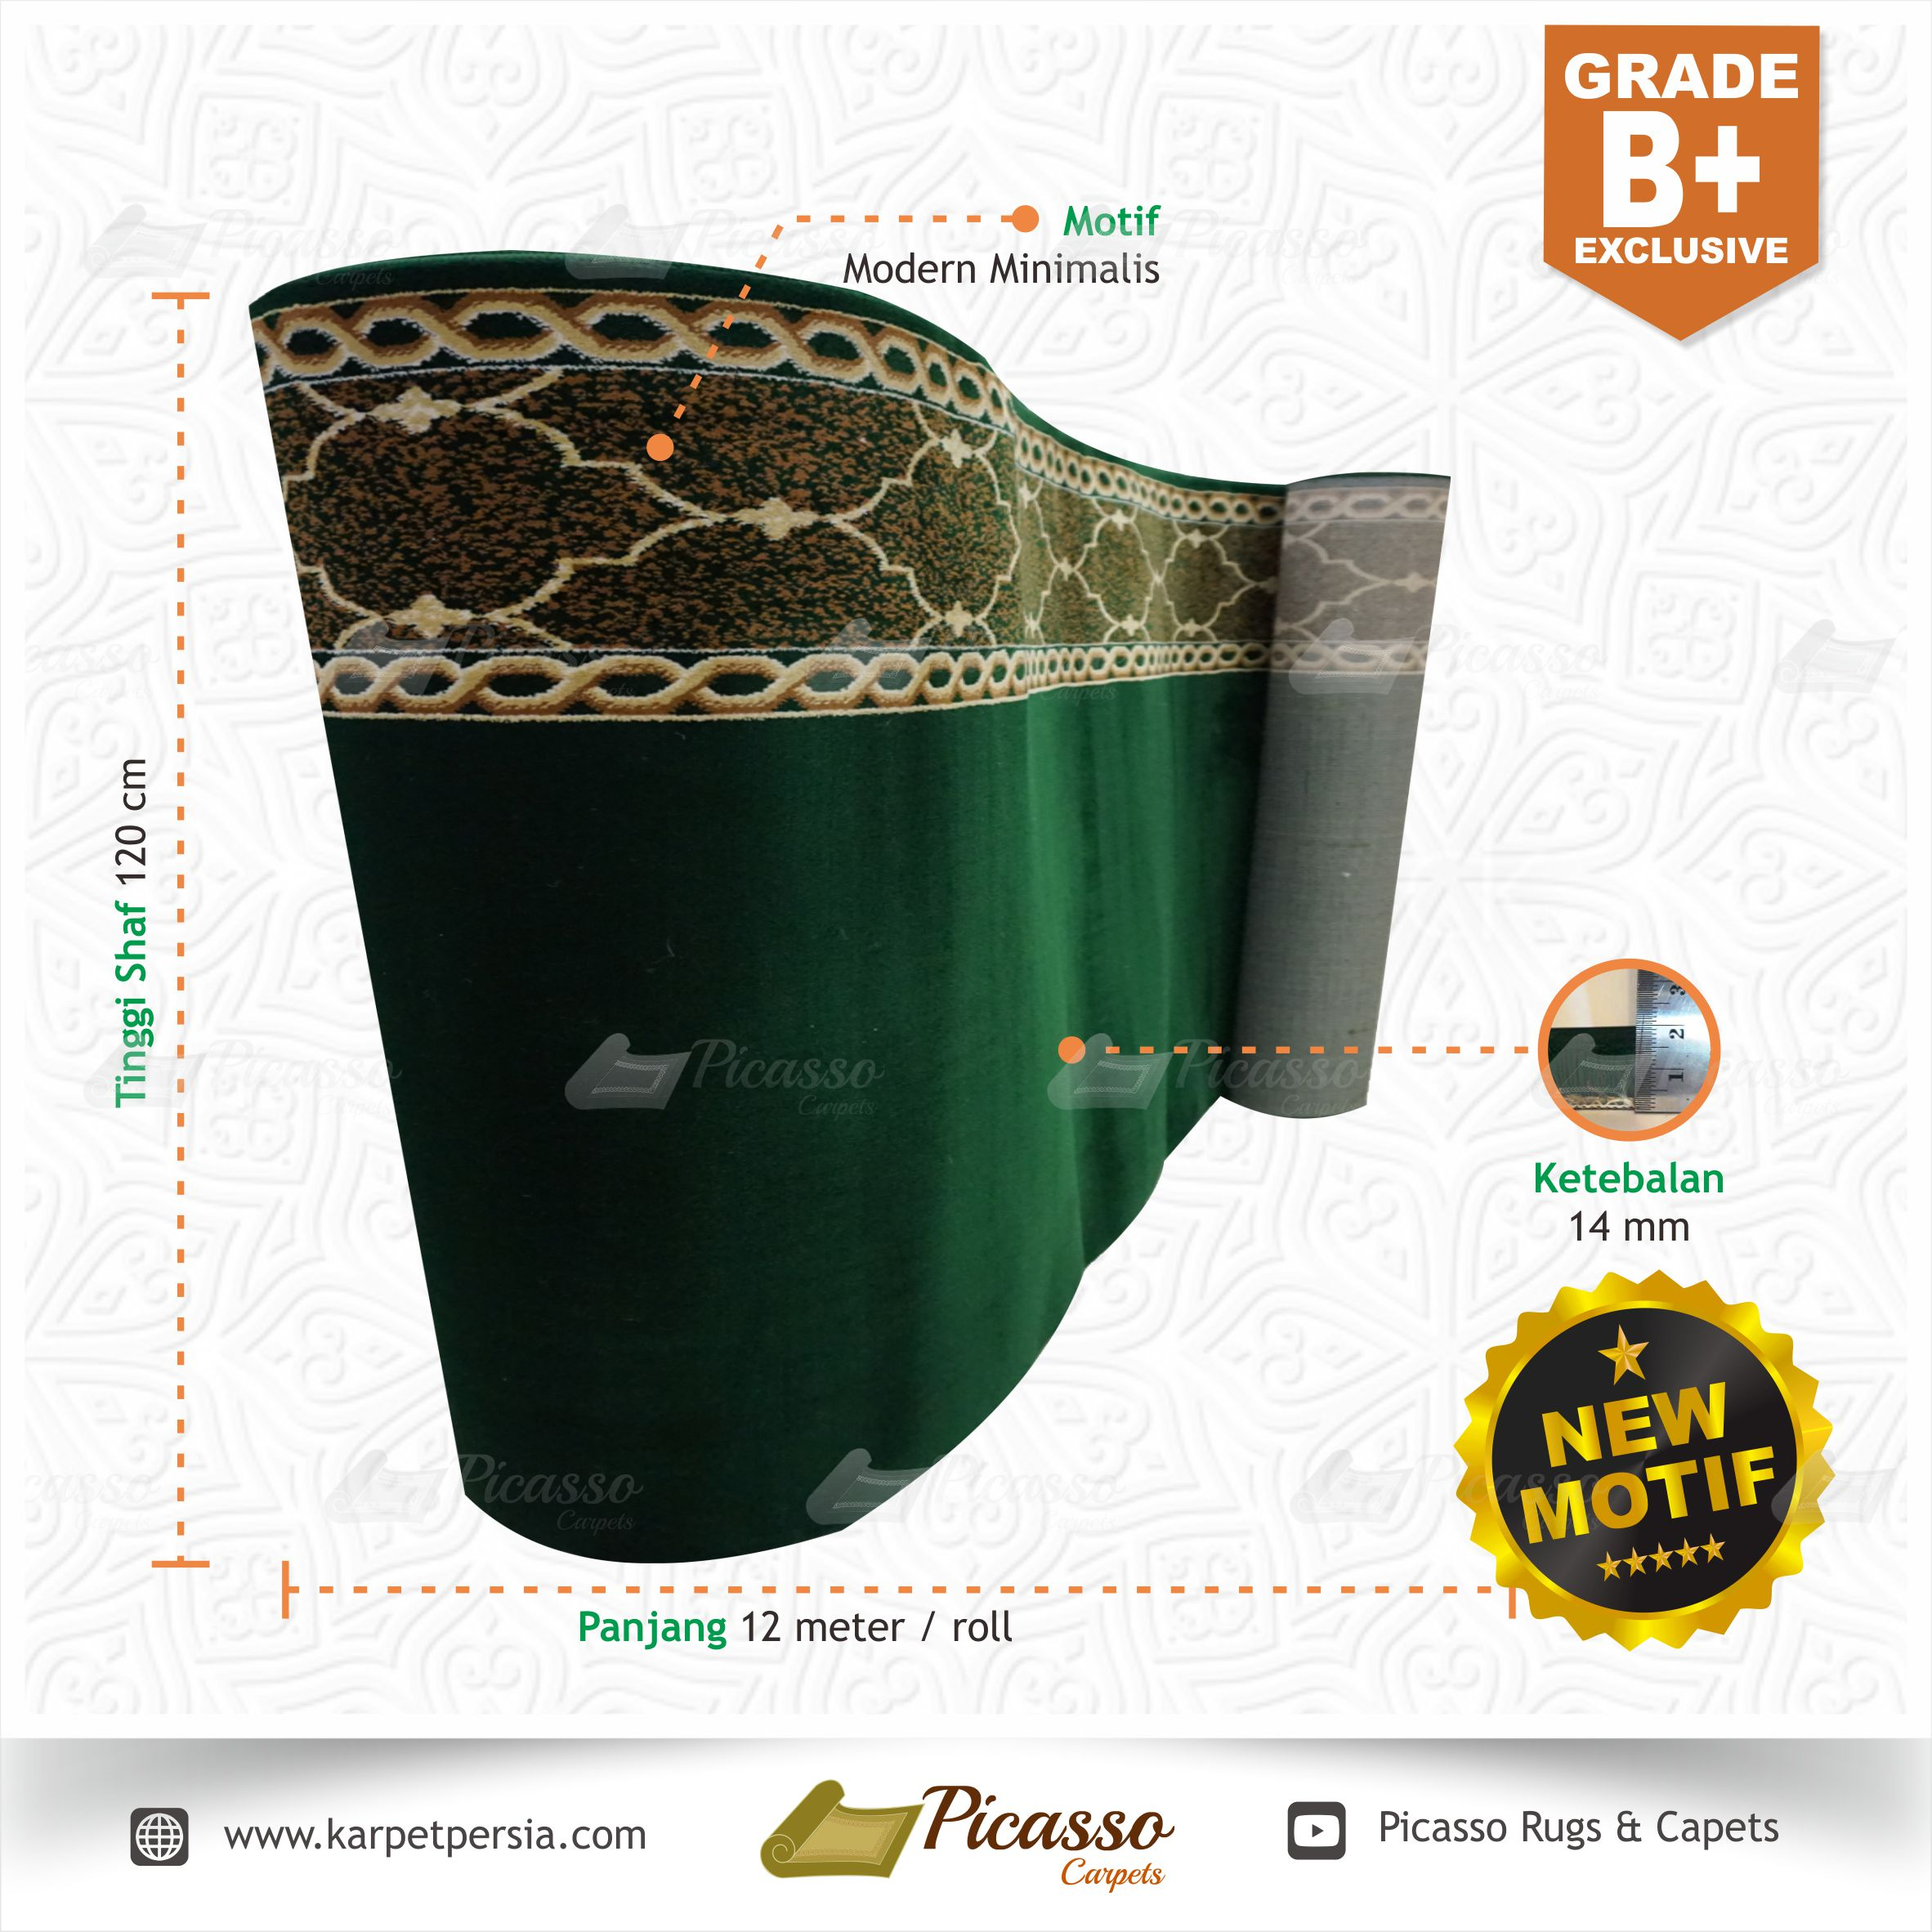 Karpet Masjid Grade B+ Exclusive (2)